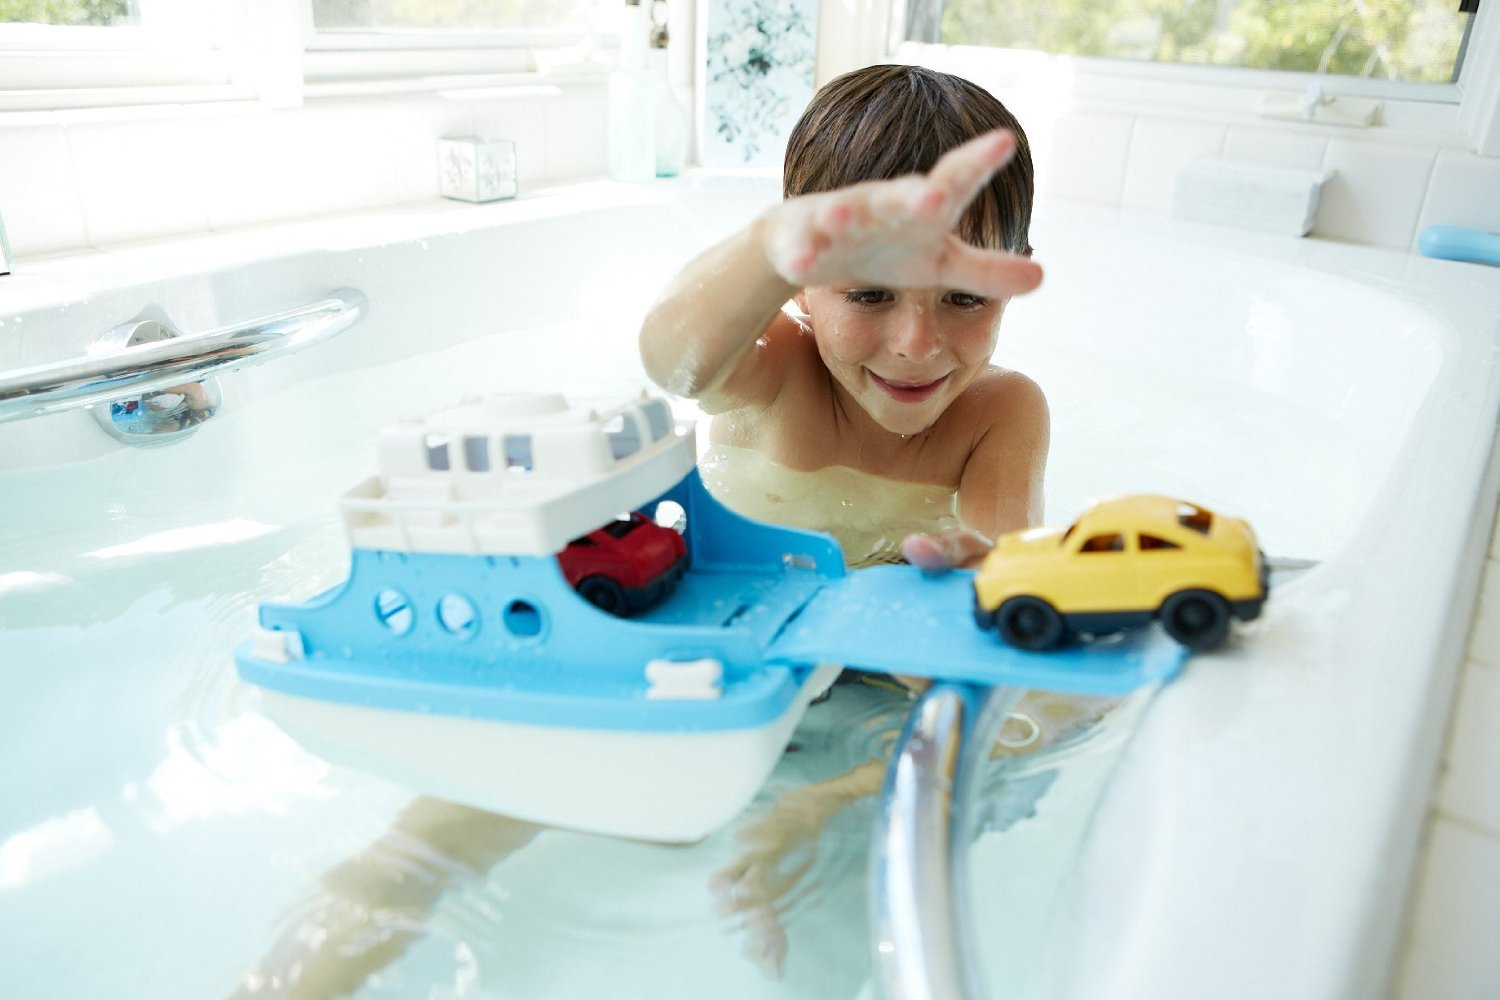 Green Toys Ferry Boat with Mini Cars Bathtub Toy, $17 @amazon.com